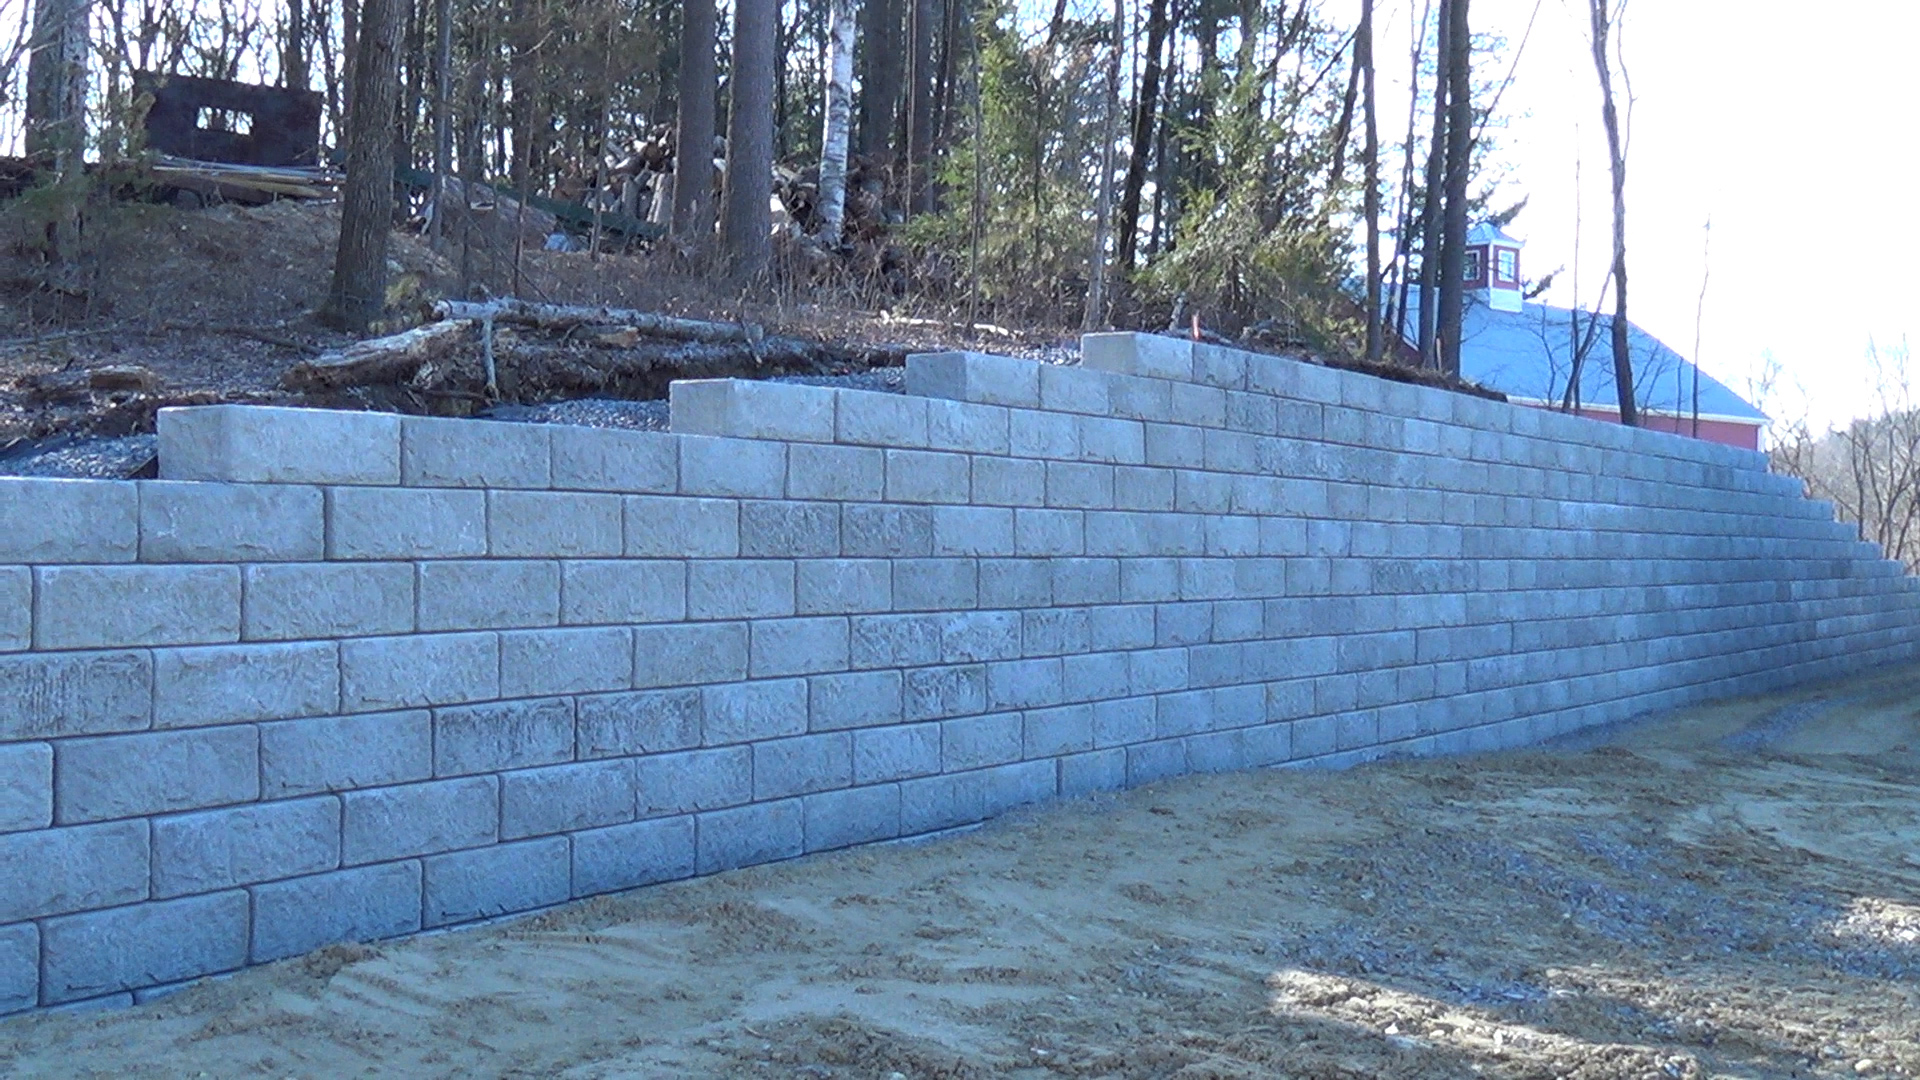 Shea Concrete Recon Retaining Wall Completed For